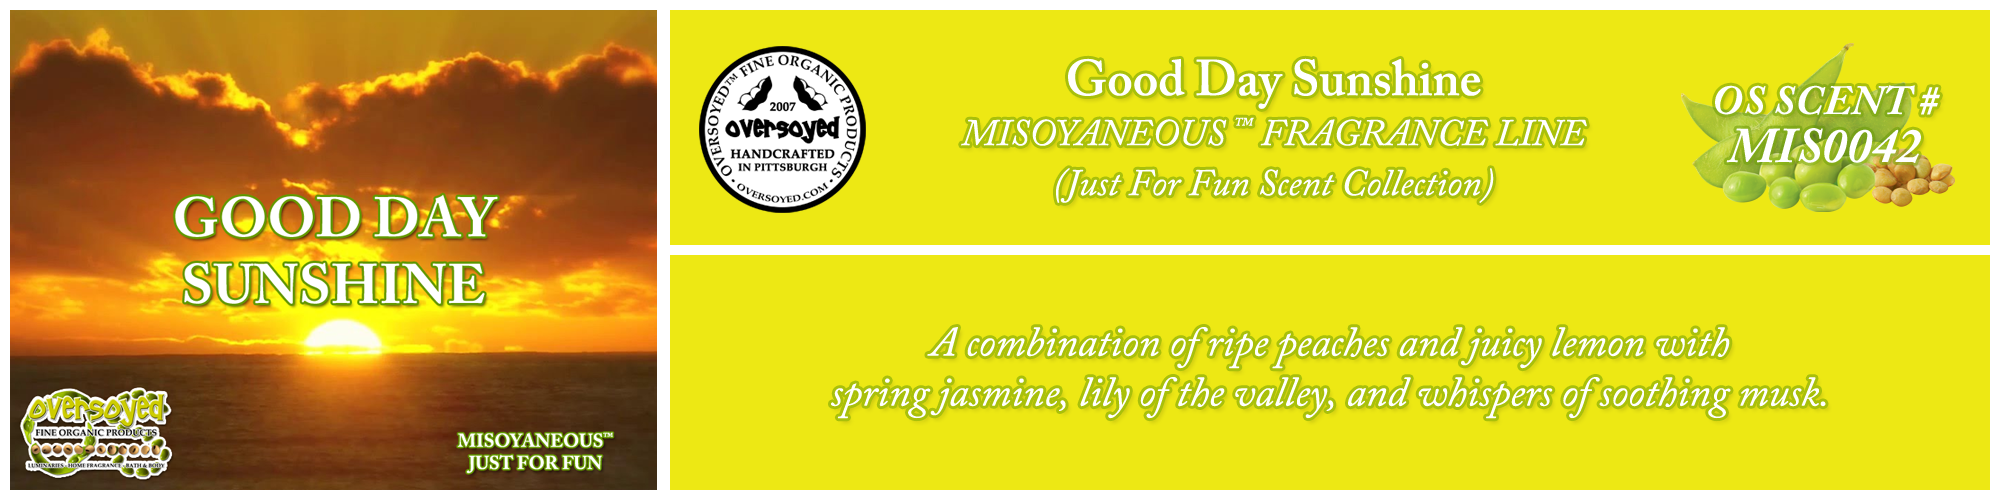 Good Day Sunshine Handcrafted Products Collection